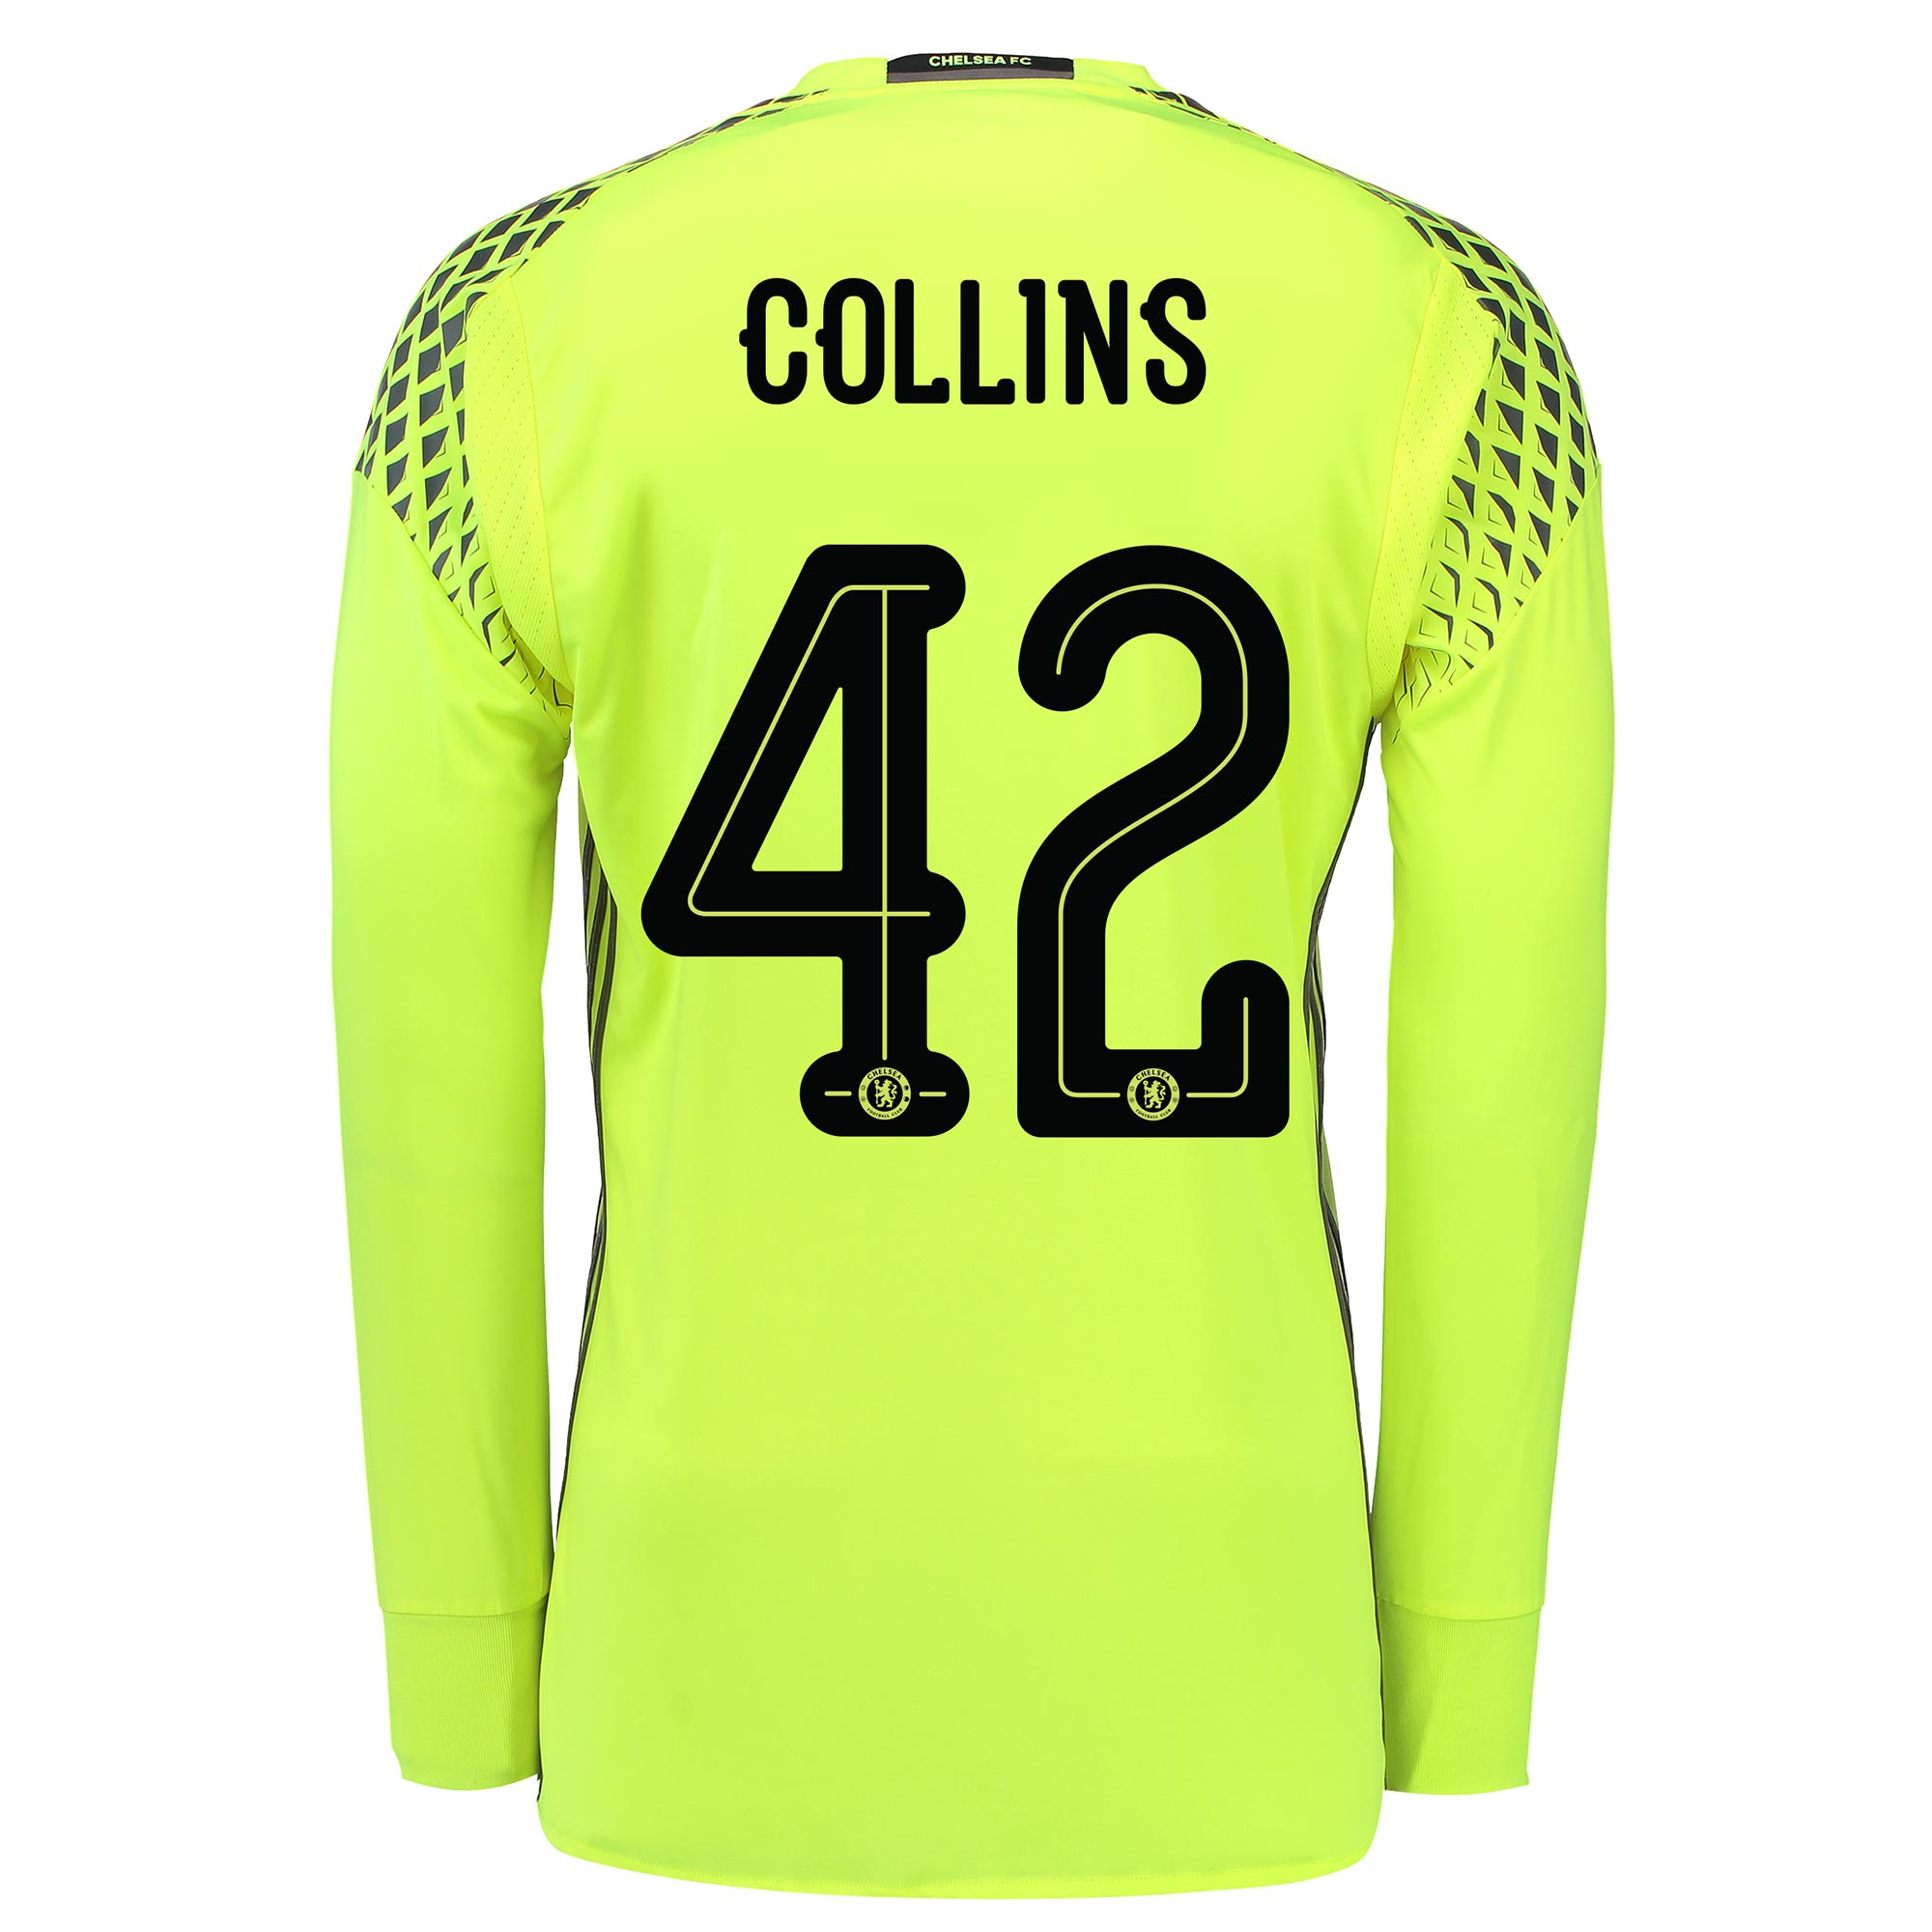 Chelsea Linear Goalkeeper Shirt 16-17 with Collins 42 printing